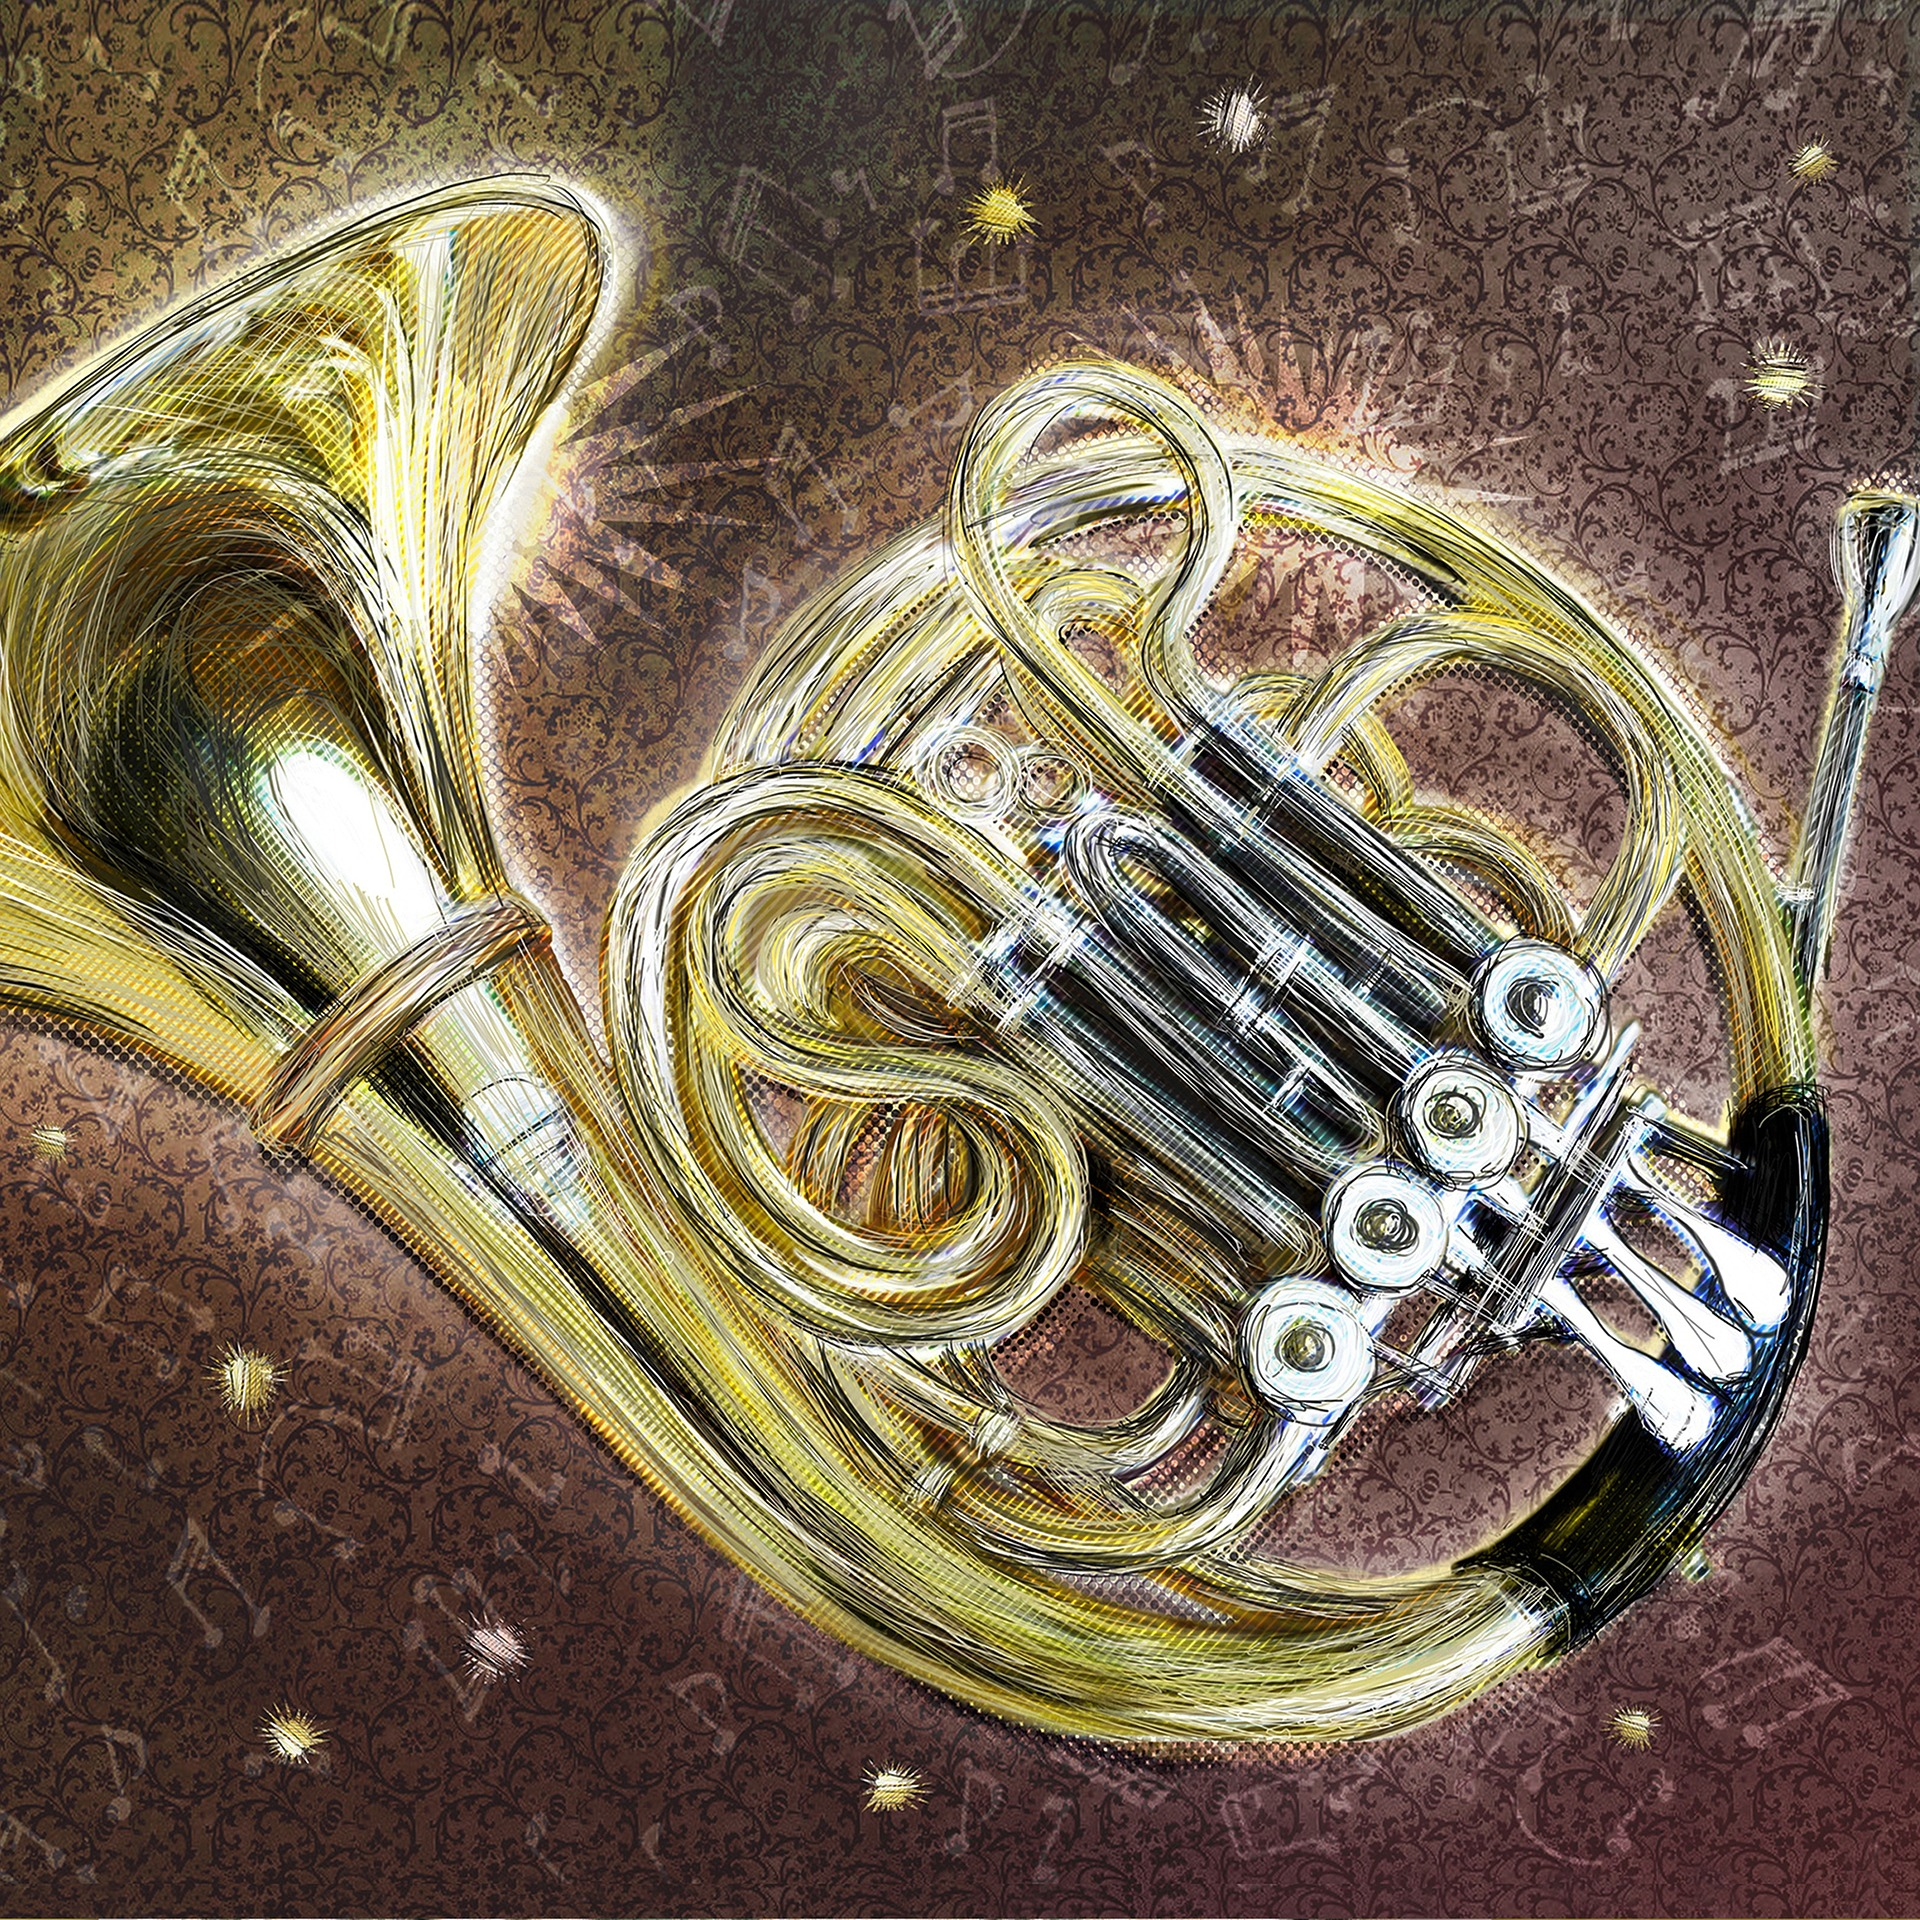 The Royal Albert Hall: French Horn